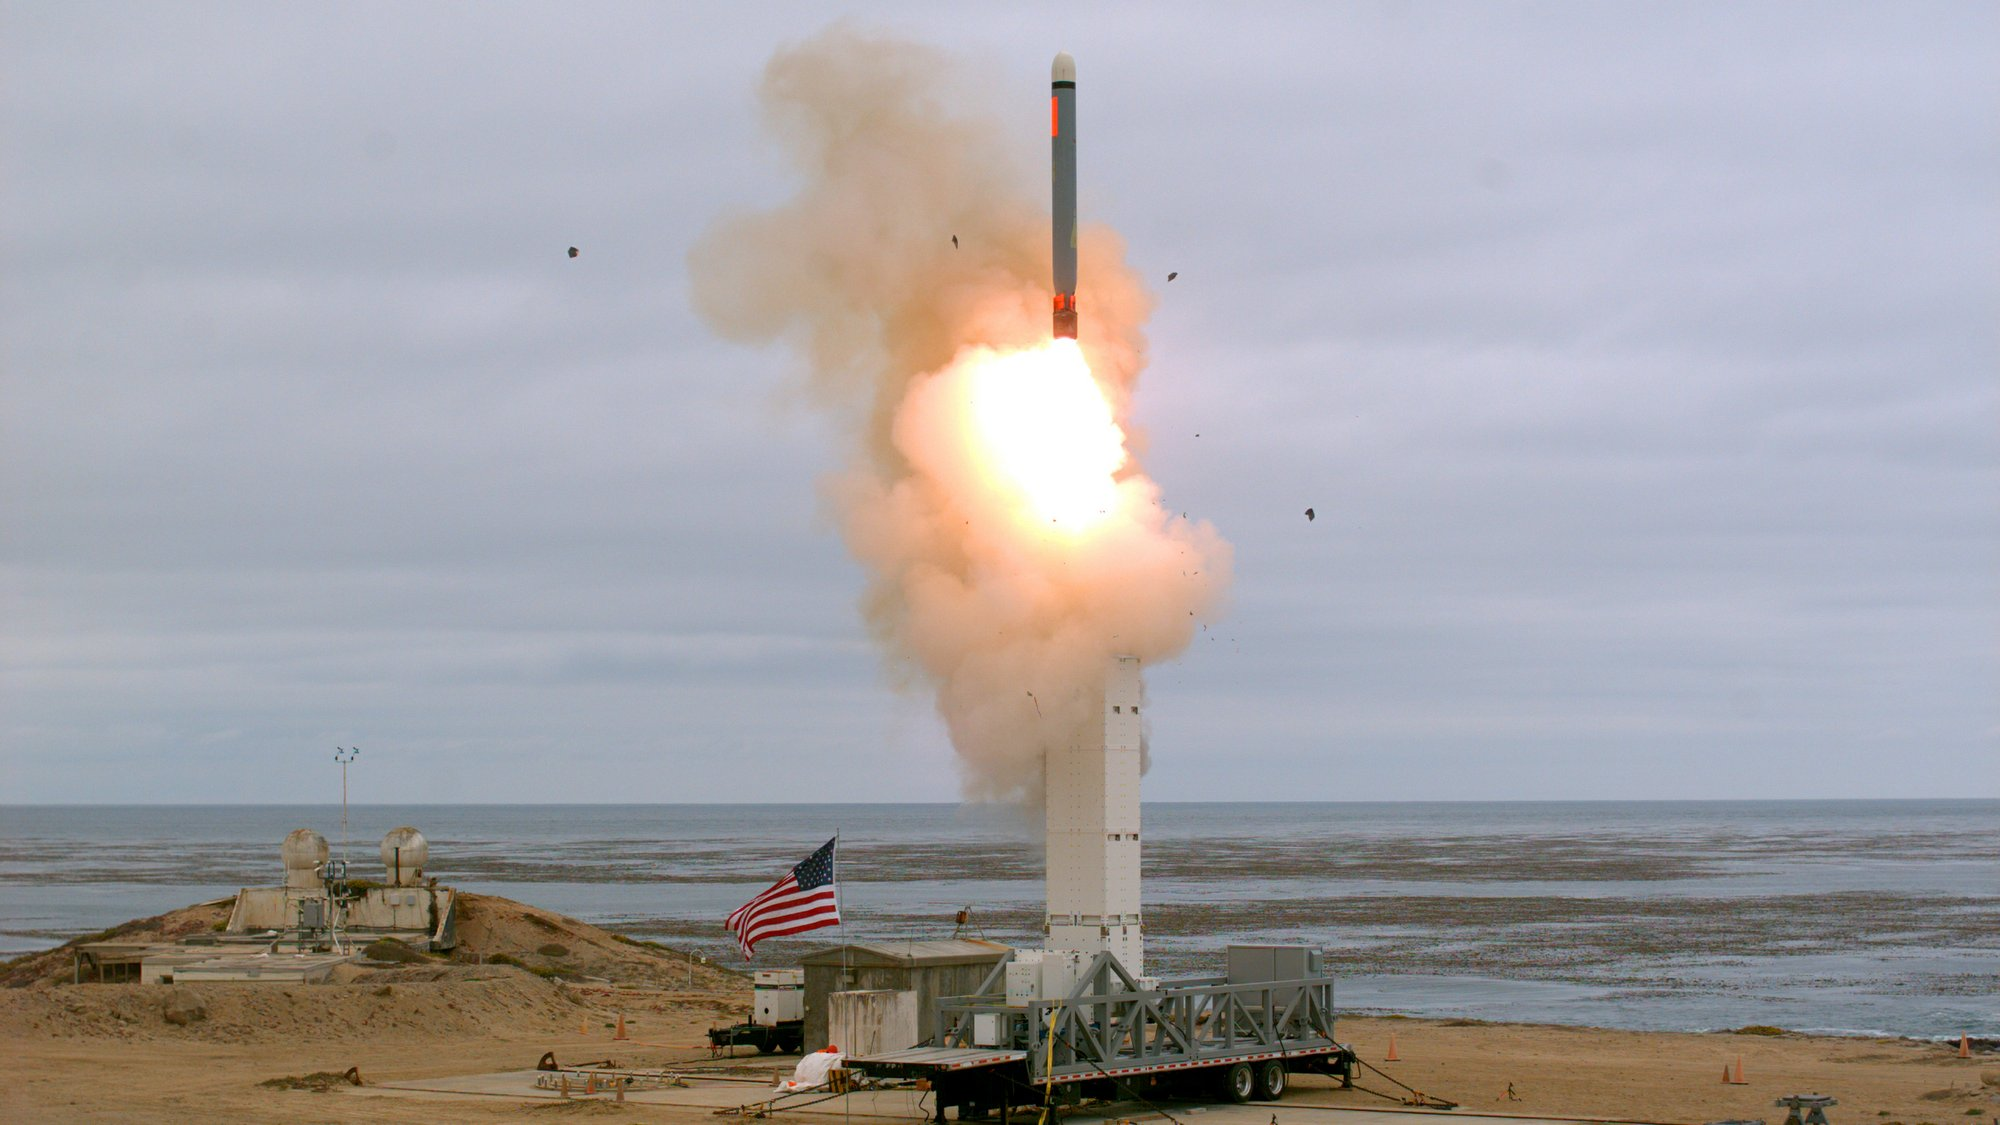 Pentagon conducts 1st test of previously banned missile